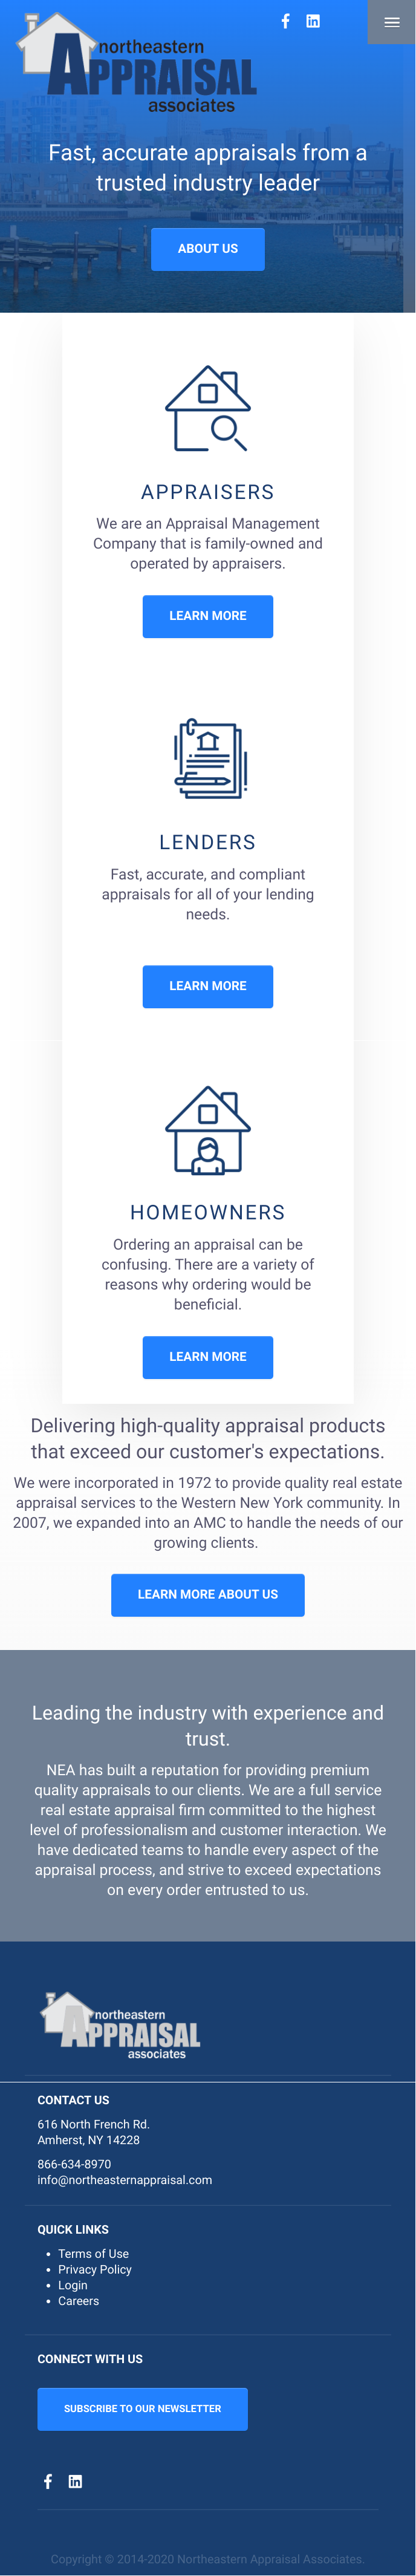 Northeastern Appraisal Website - Mobile